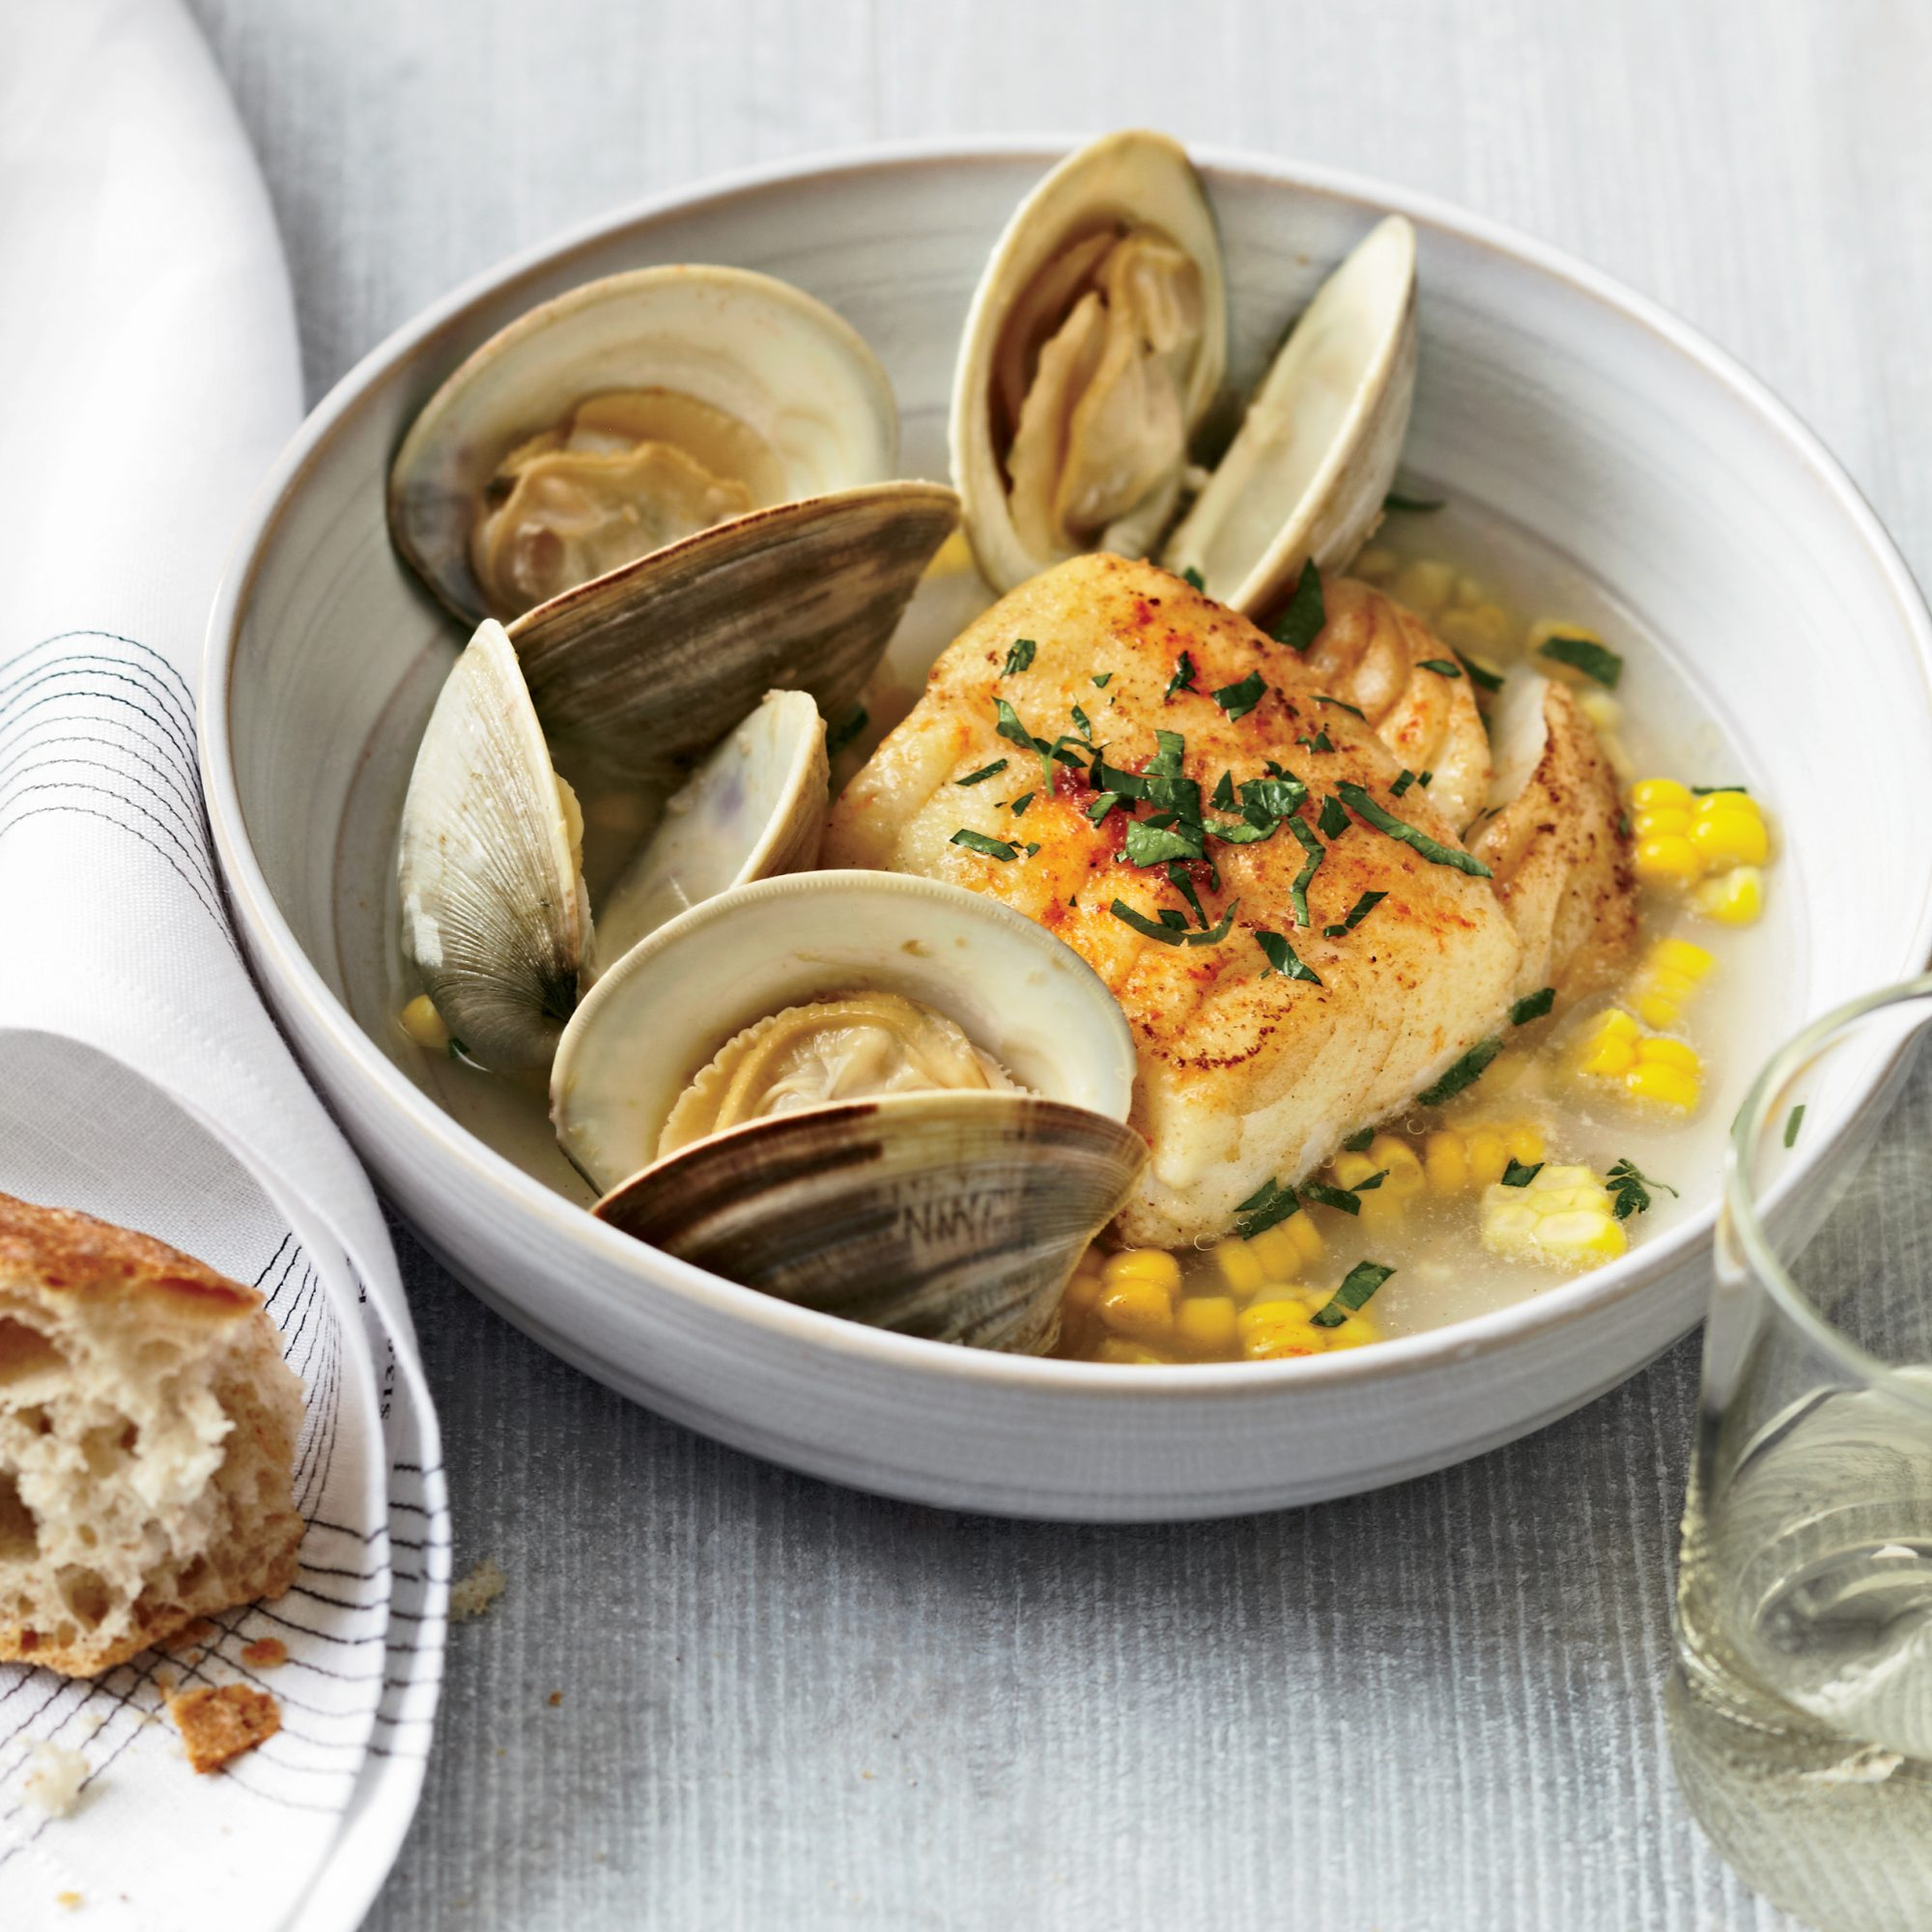 201107-r-Ten-Minute-Salt-Cod-with-Corn-and-Littleneck-Clams.jpg